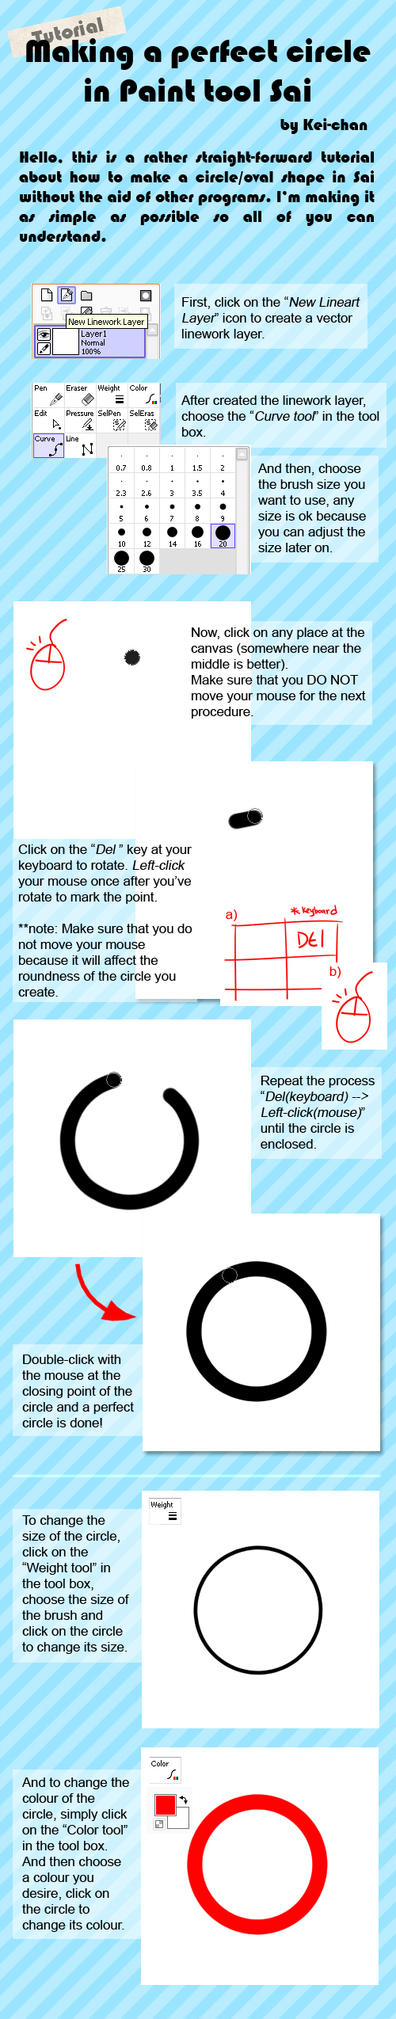 How to make circle in SAI by Keichan411